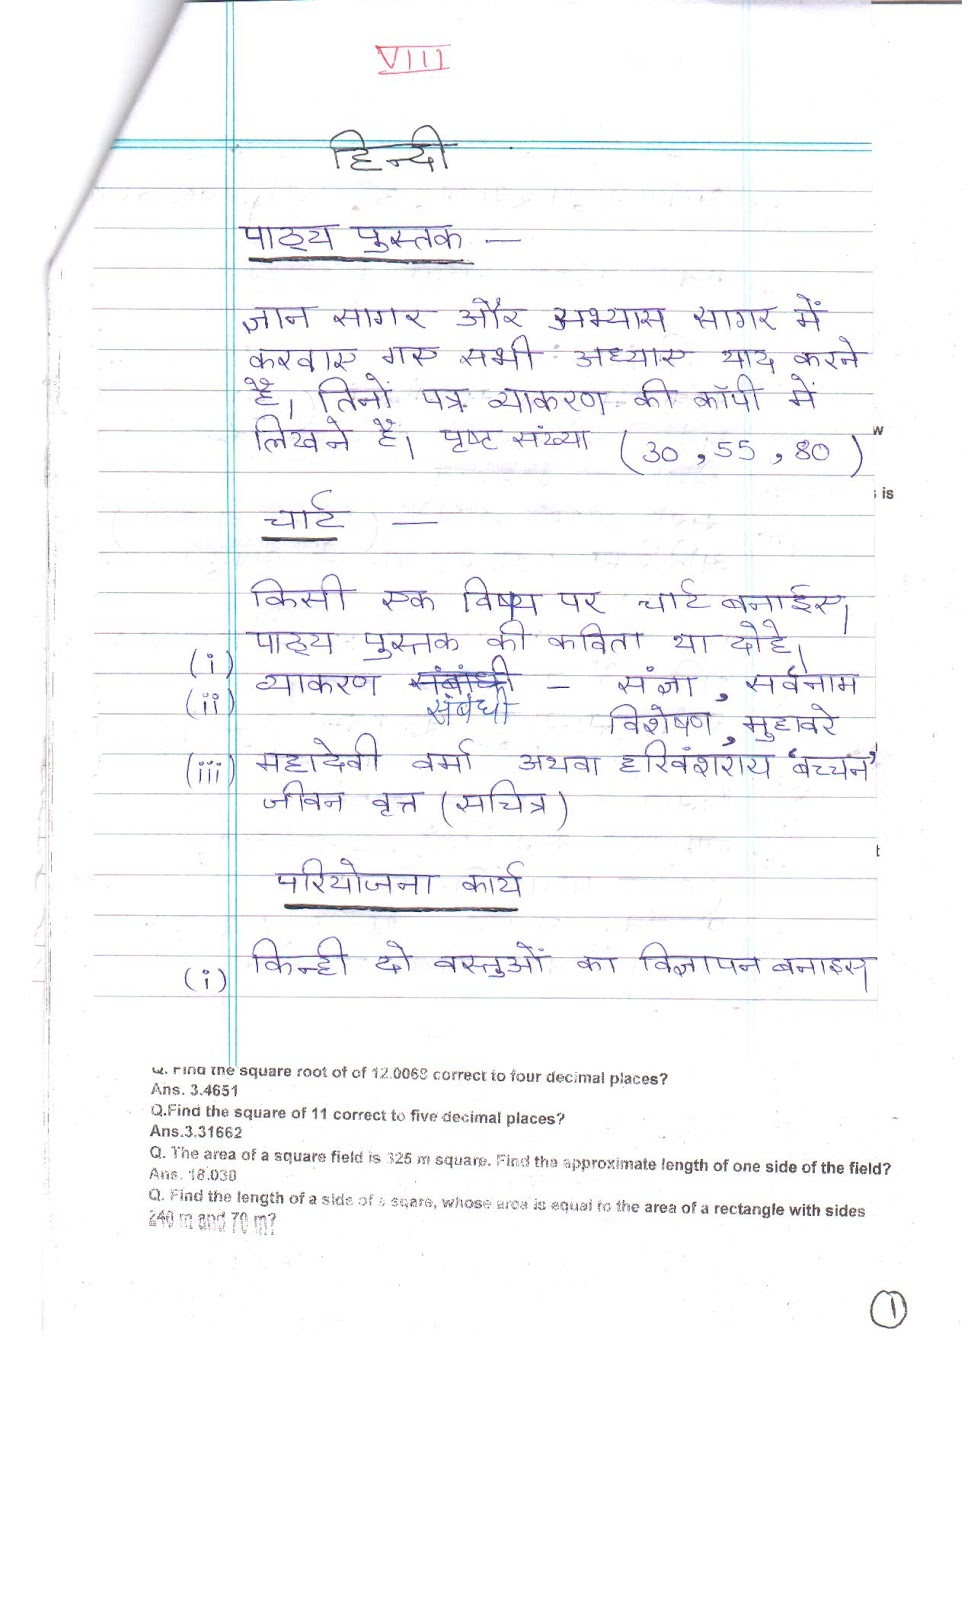 Cover letter microbiology interview questions image 2